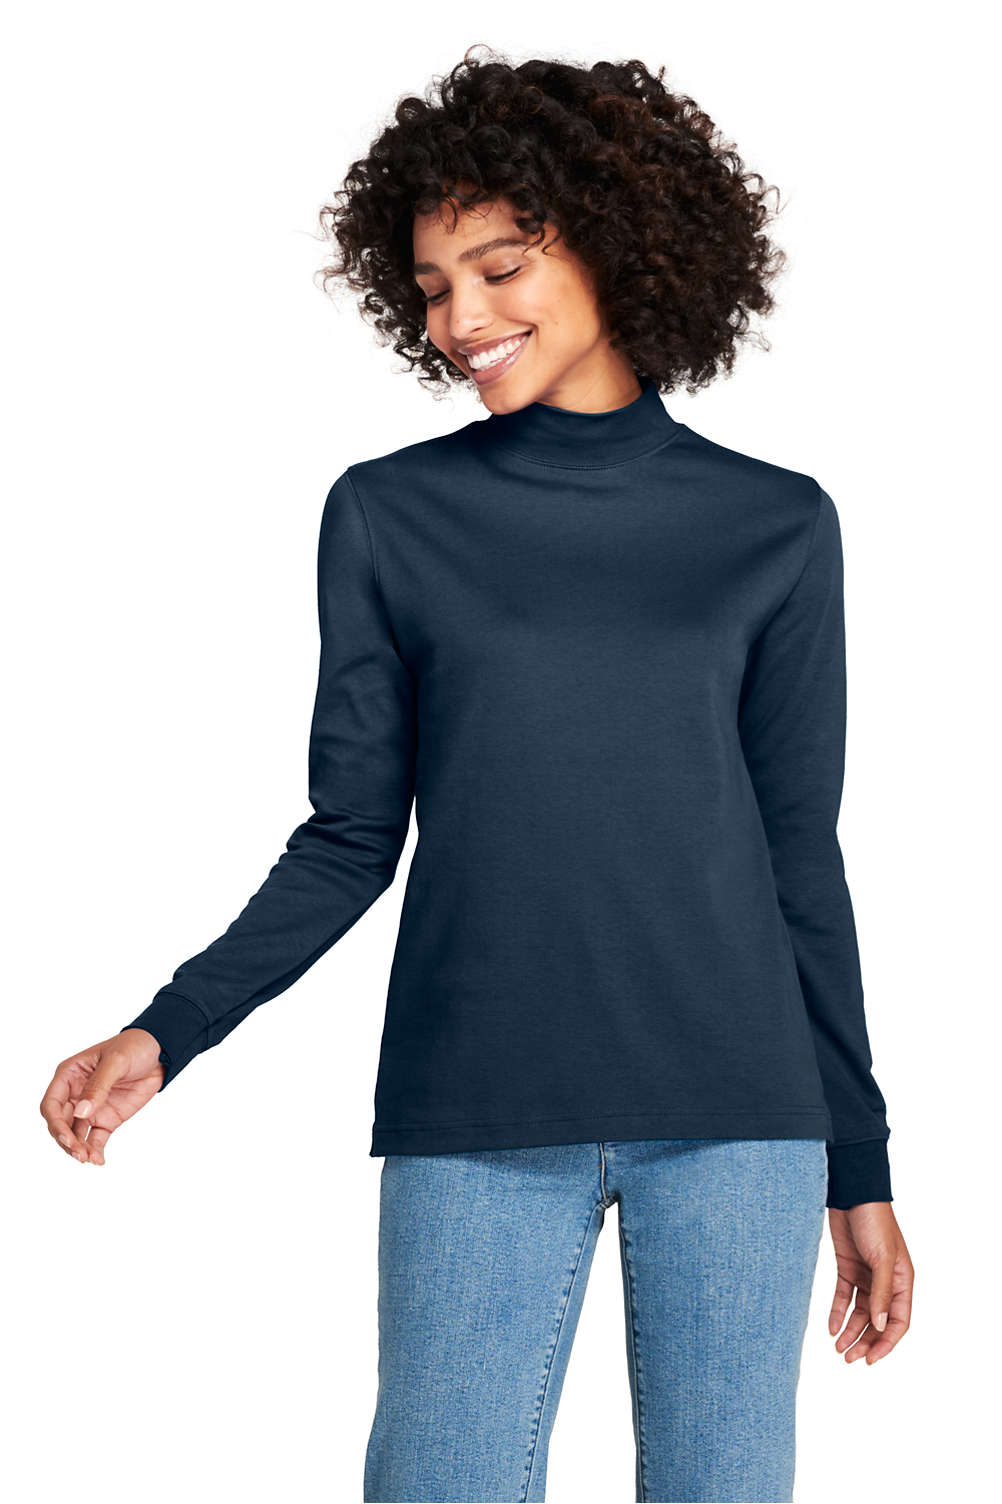 b6d38542c9 Women's Relaxed Cotton Mock Turtleneck from Lands' End